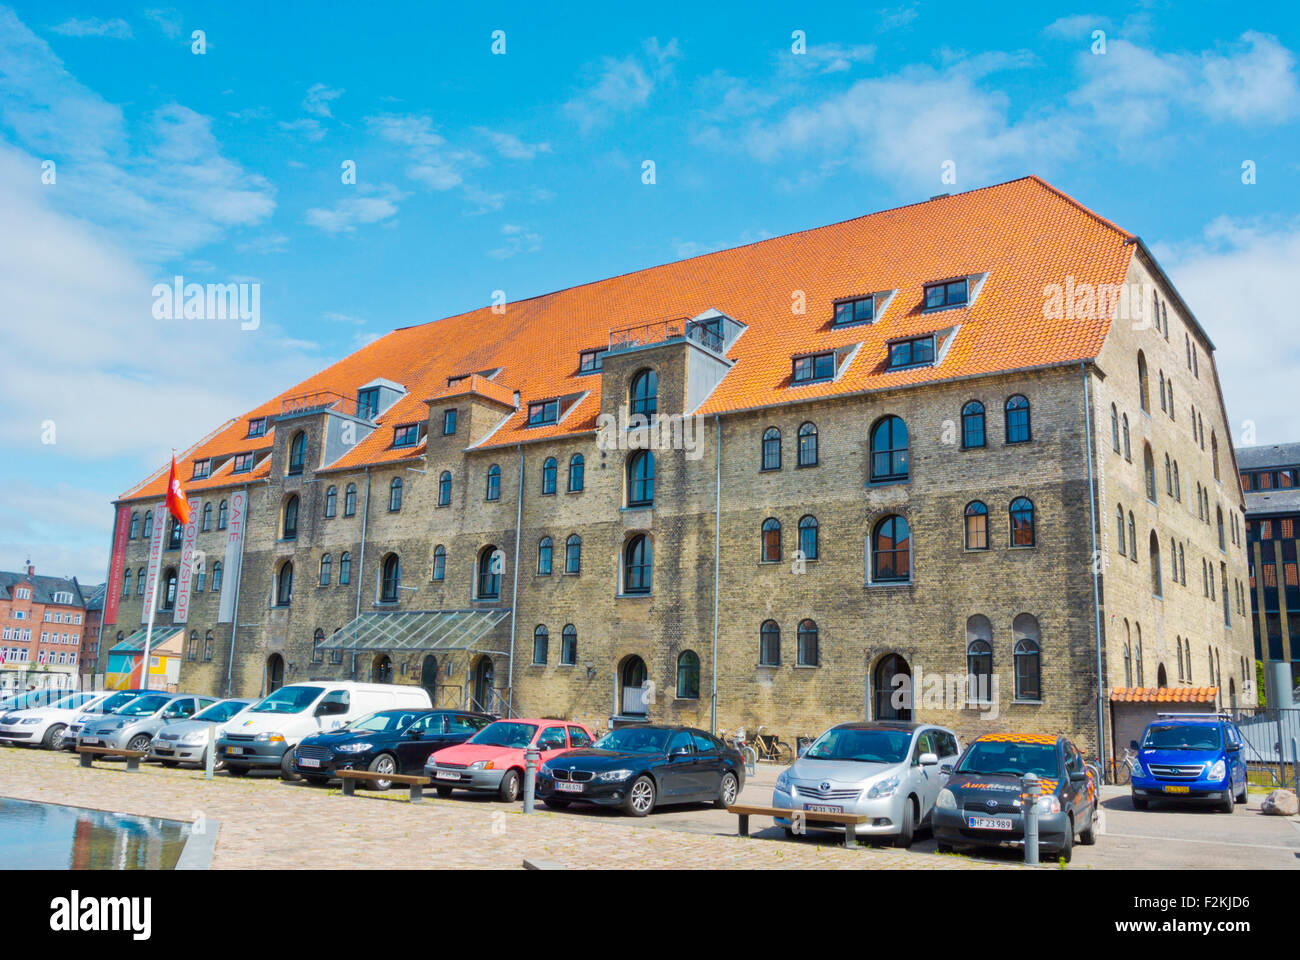 Dansk Arkitektur Center, Danish architecture centre, Christianshavn, Copenhagen, Denmark - Stock Image